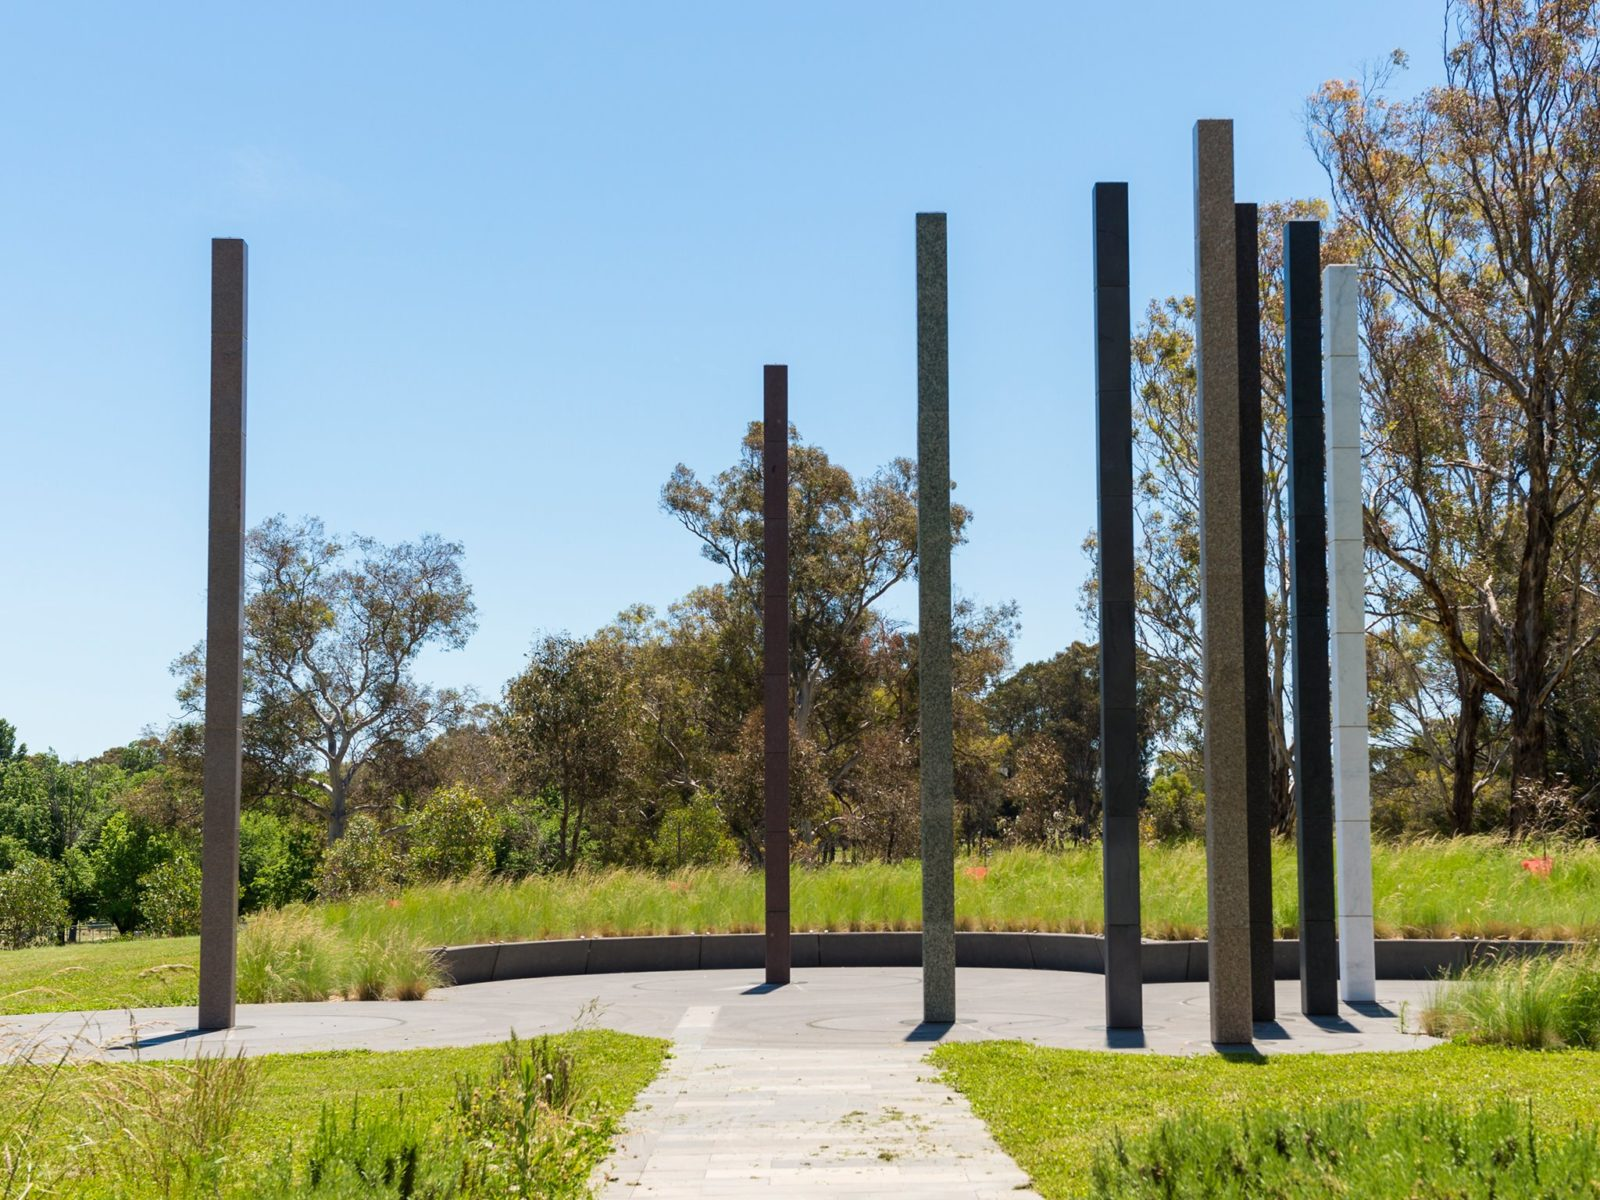 National Workers Memorial in Kings Park